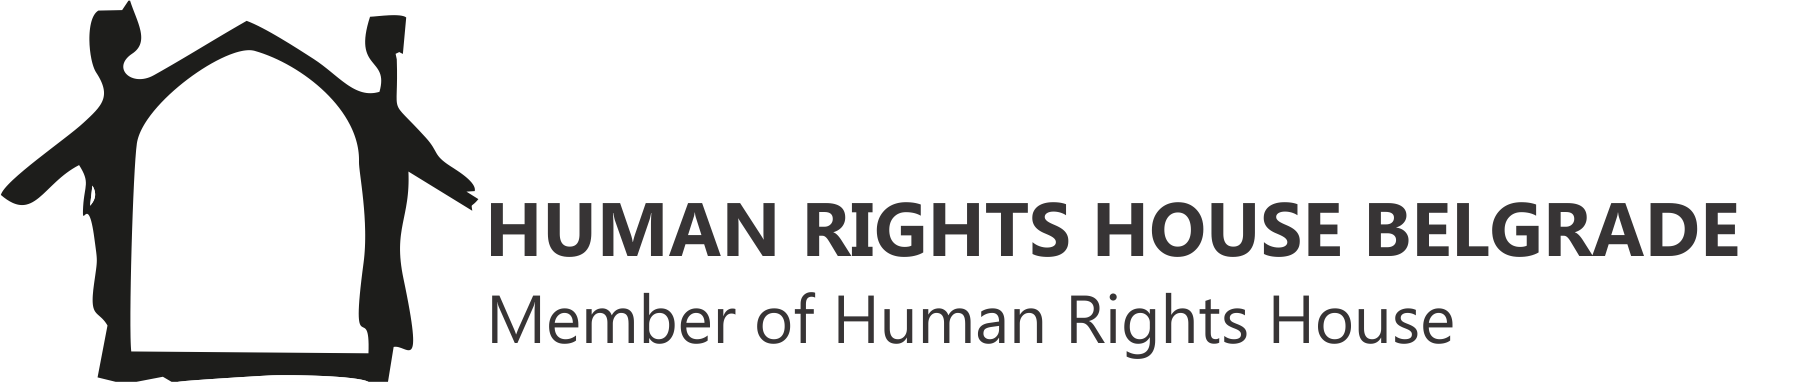 Human Rights House Belgrade